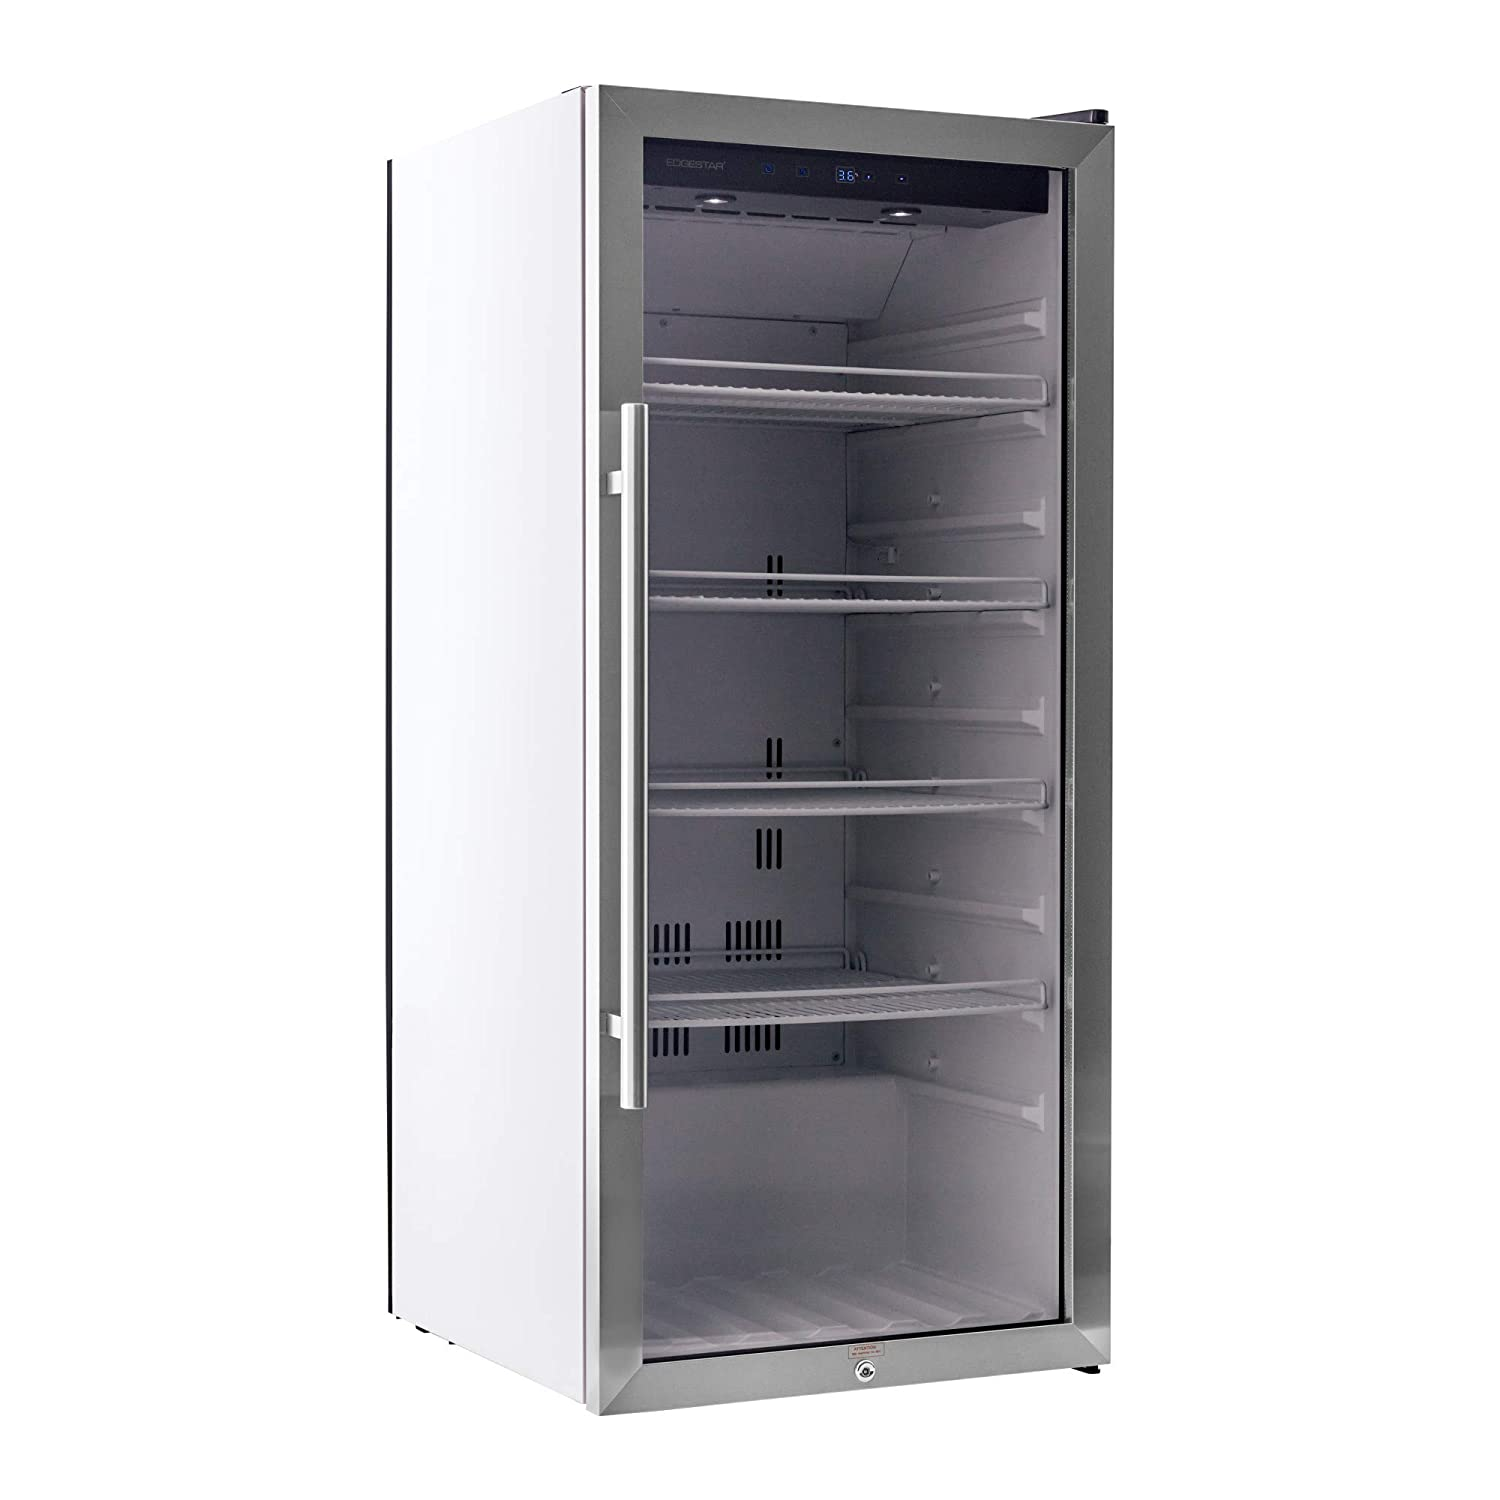 e8e7f11981e Amazon.com  EdgeStar VBR240 Stainless Steel 22 Inch Wide 8.6 Cu. Ft.  Commercial Beverage Merchandiser with Temperature Alarm  Appliances